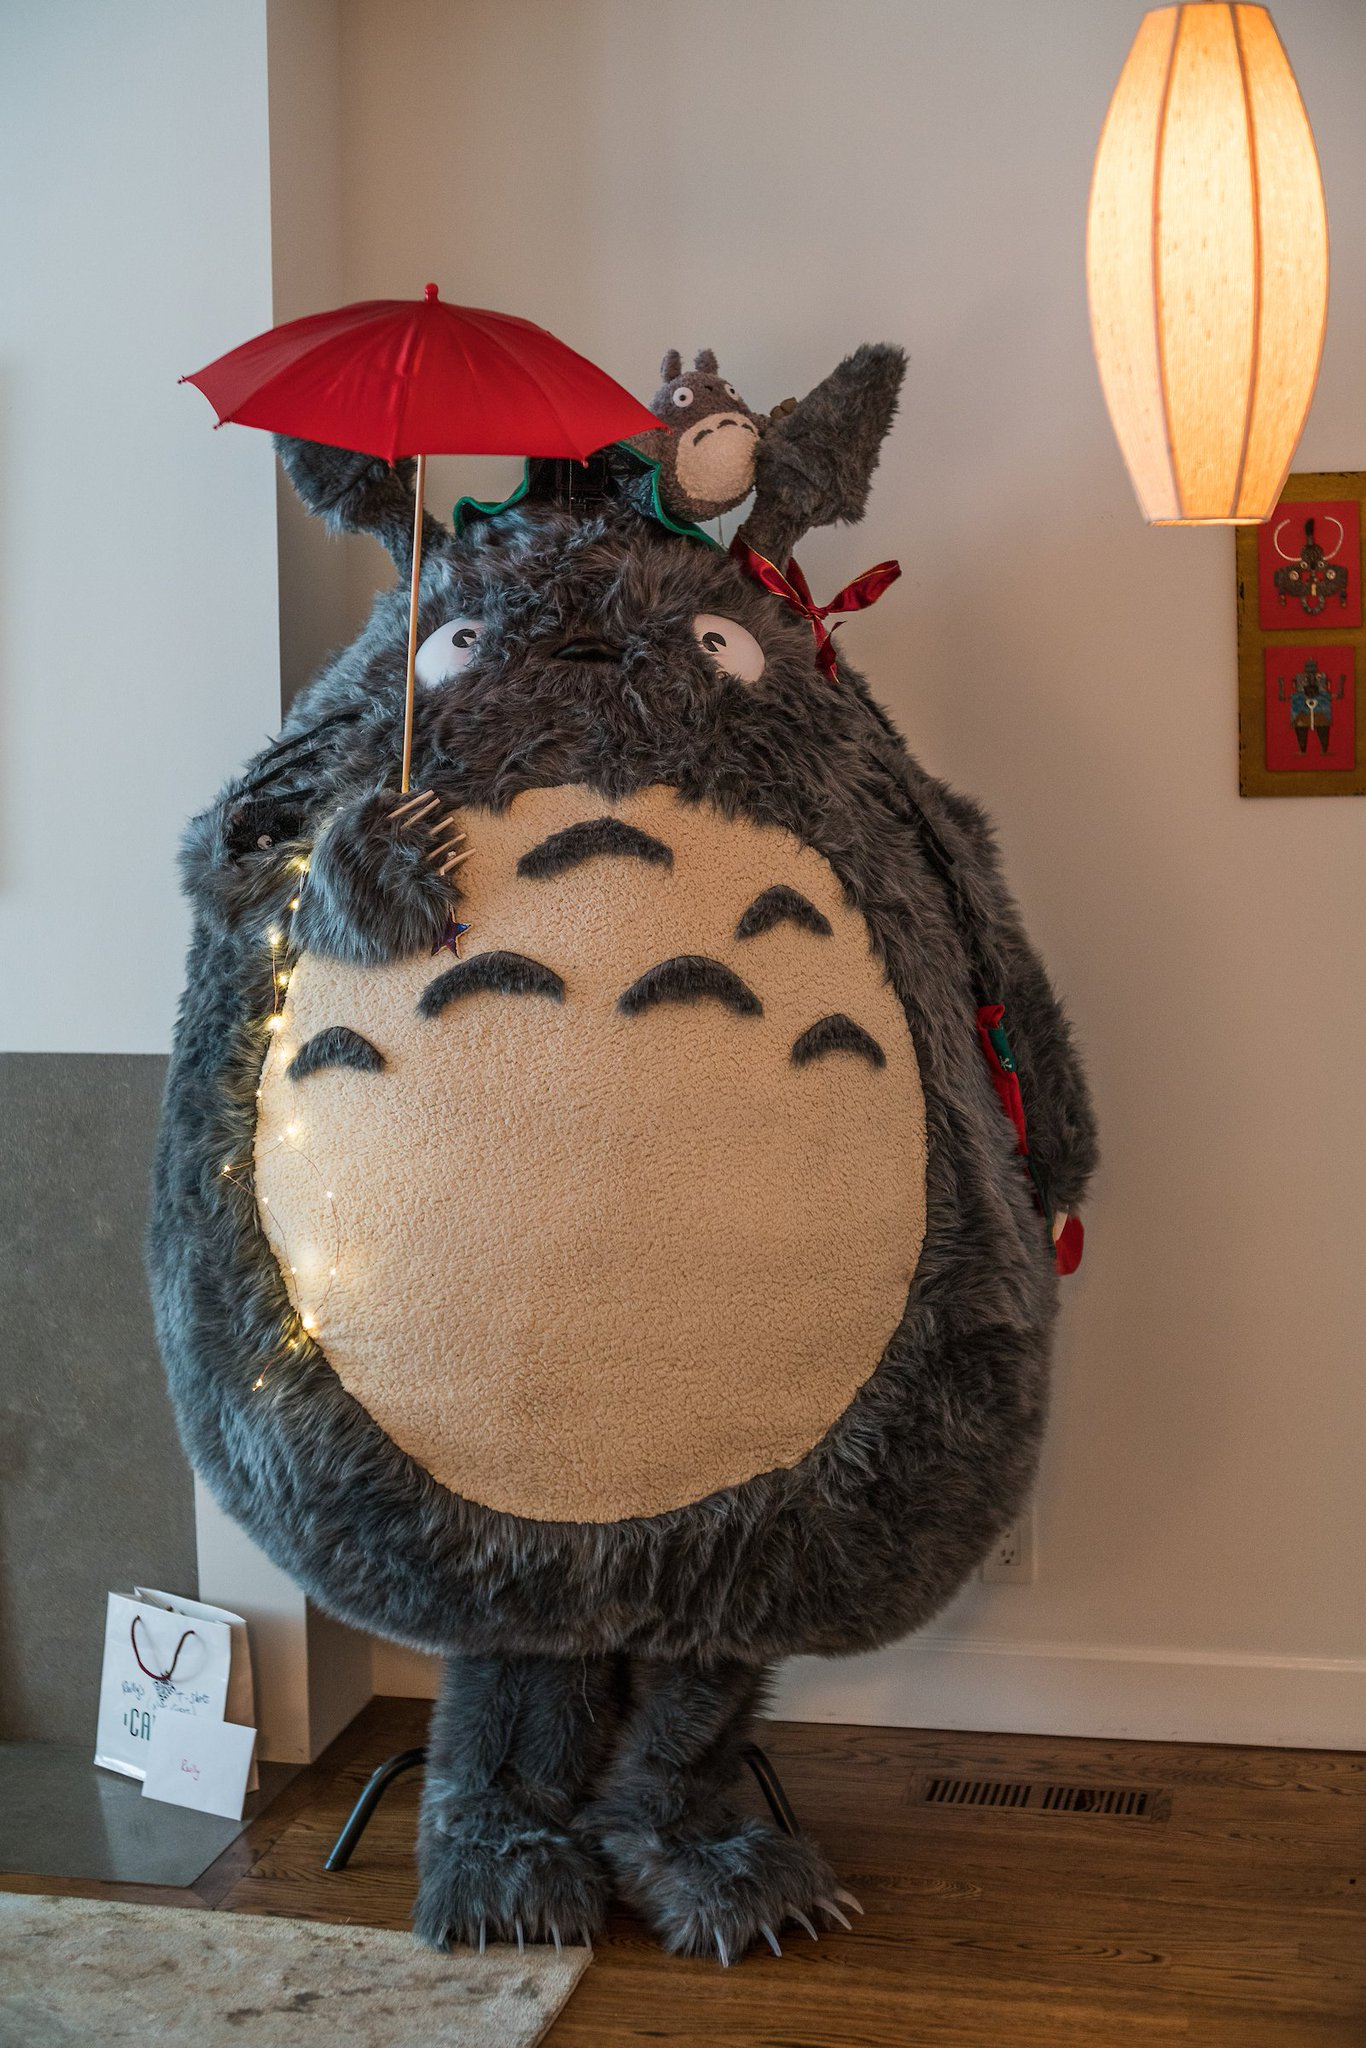 Totoro lives in my living room. (Appropriately enough.) Photo by @echeng. https://t.co/HR0YjiivOe